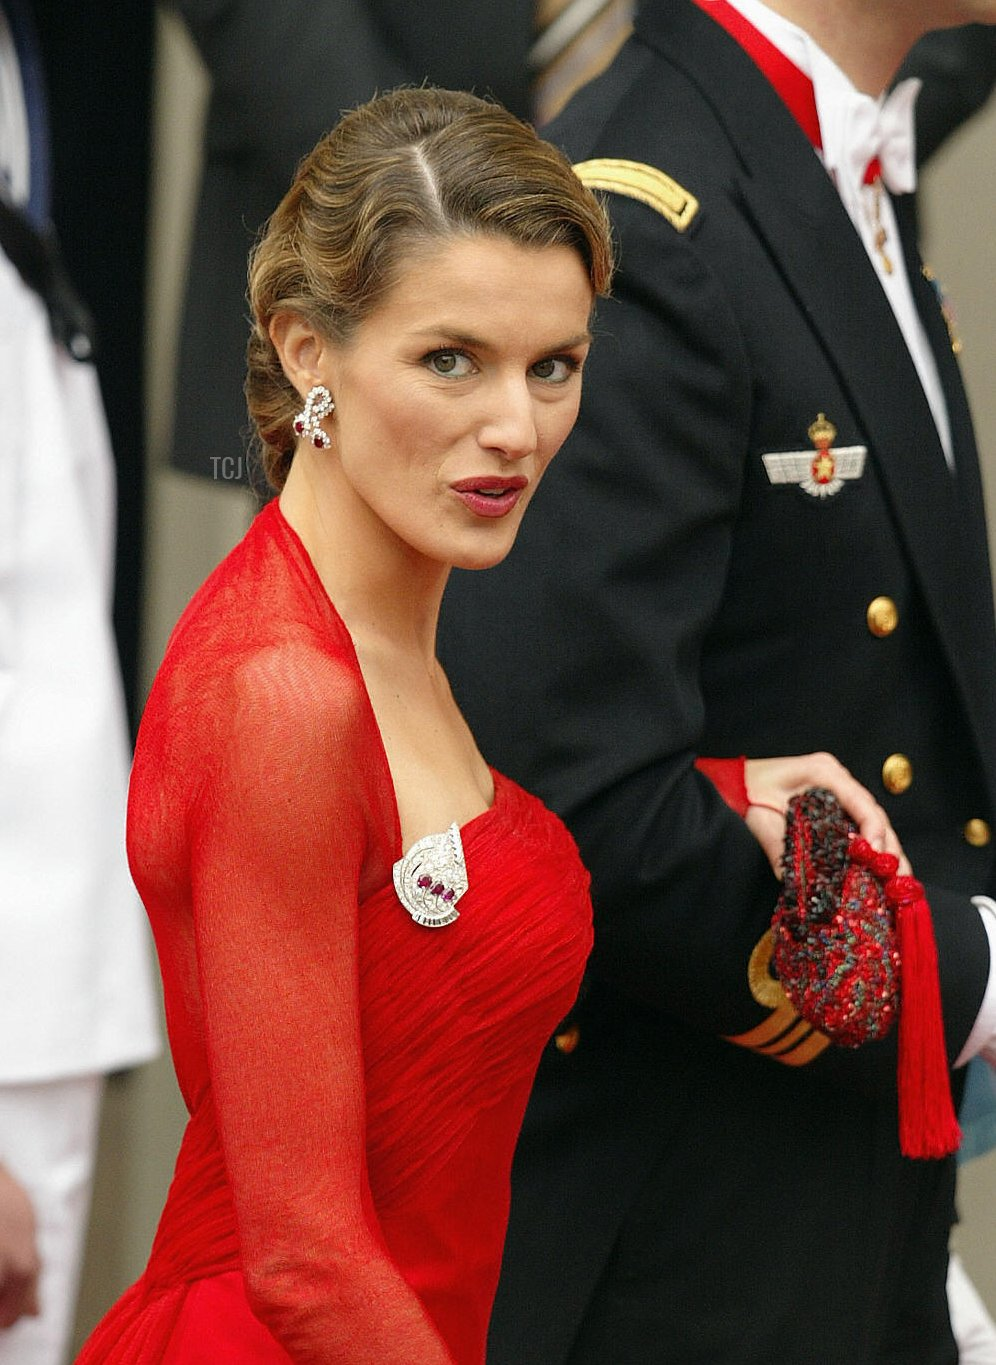 Crown Prince Felipe of Spain and his fiancee Letizia Ortiz arrive at the Copenhagen Cathedral in Copenhagen, 14 May 2004, for the wedding of Mary Elisabeth Donaldson and Crown Prince Frederik of Denmark